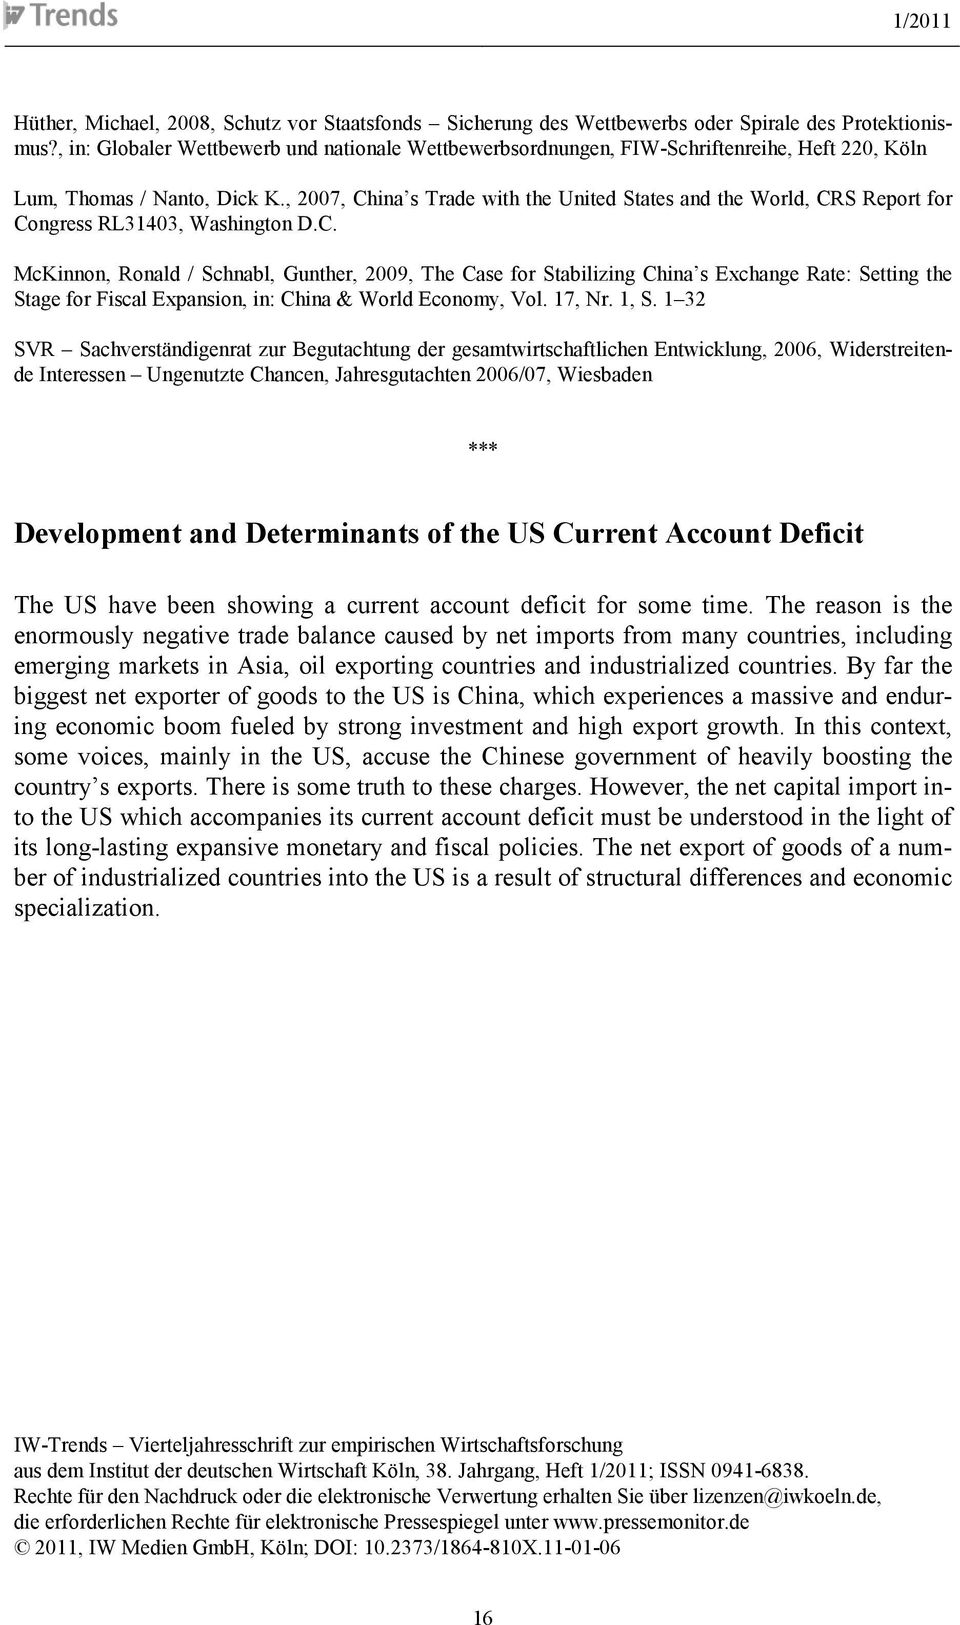 , 2007, China s Trade with the United States and the World, CRS Report for Congress RL31403, Washington D.C. McKinnon, Ronald / Schnabl, Gunther, 2009, The Case for Stabilizing China s Exchange Rate: Setting the Stage for Fiscal Expansion, in: China & World Economy, Vol.